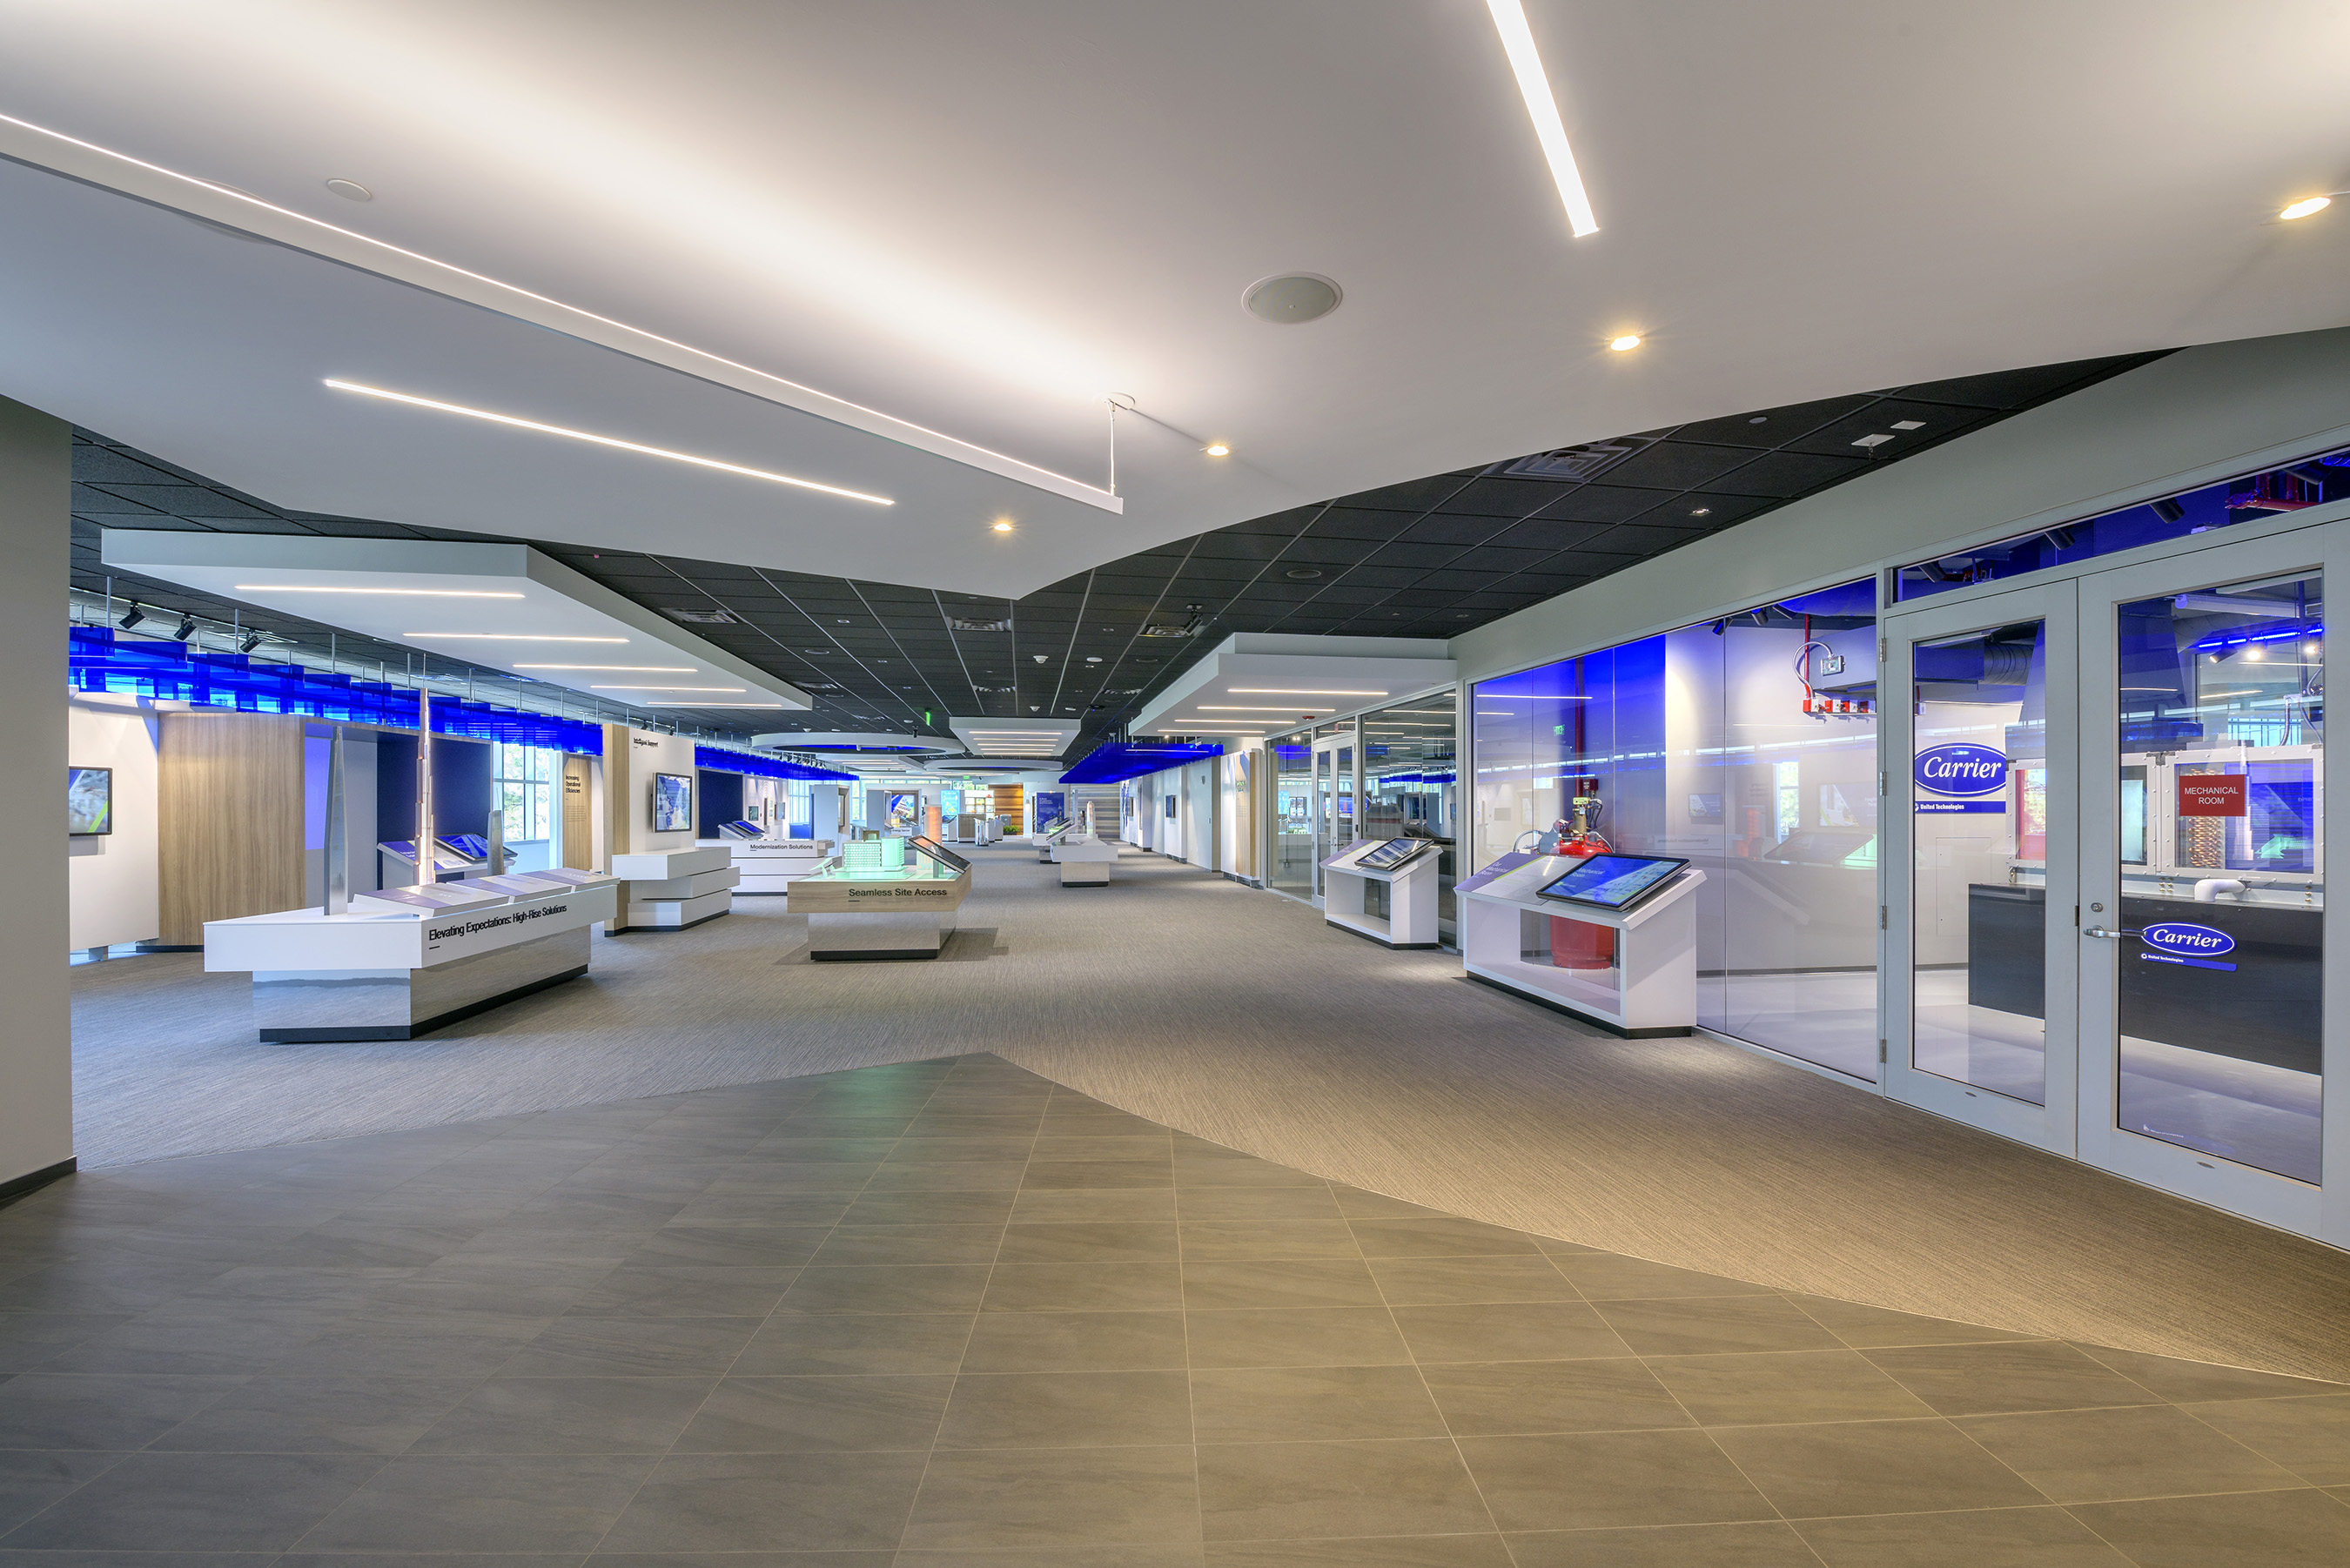 Our state-of-the-art customer experience center highlights our company and our solutions both in the building and around the world, through actual products, touch-screen displays, models and more.